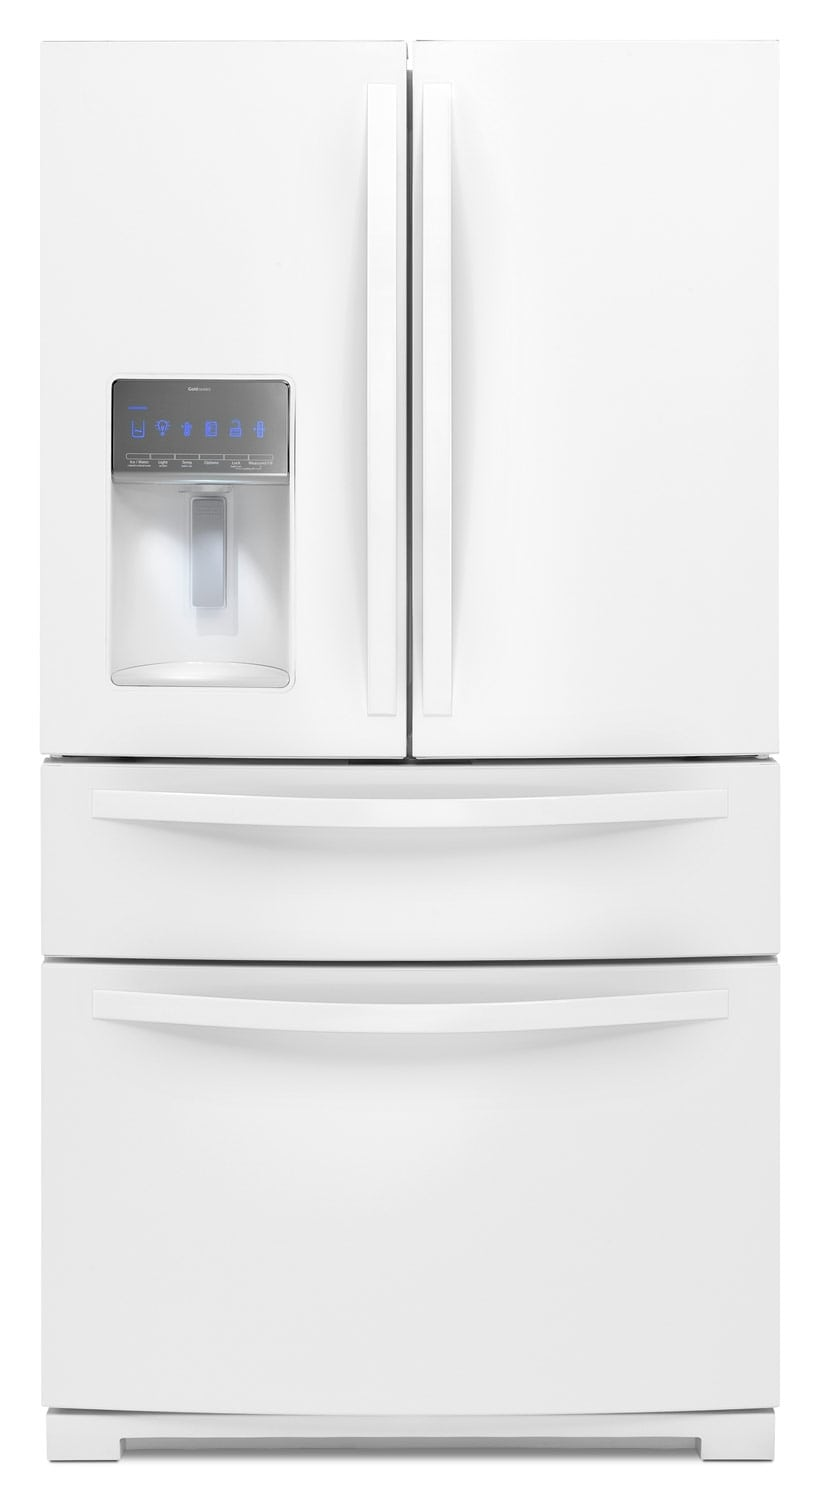 [Whirlpool White French Door Refrigerator (26.2 Cu. Ft.) - WRX988SIBW]